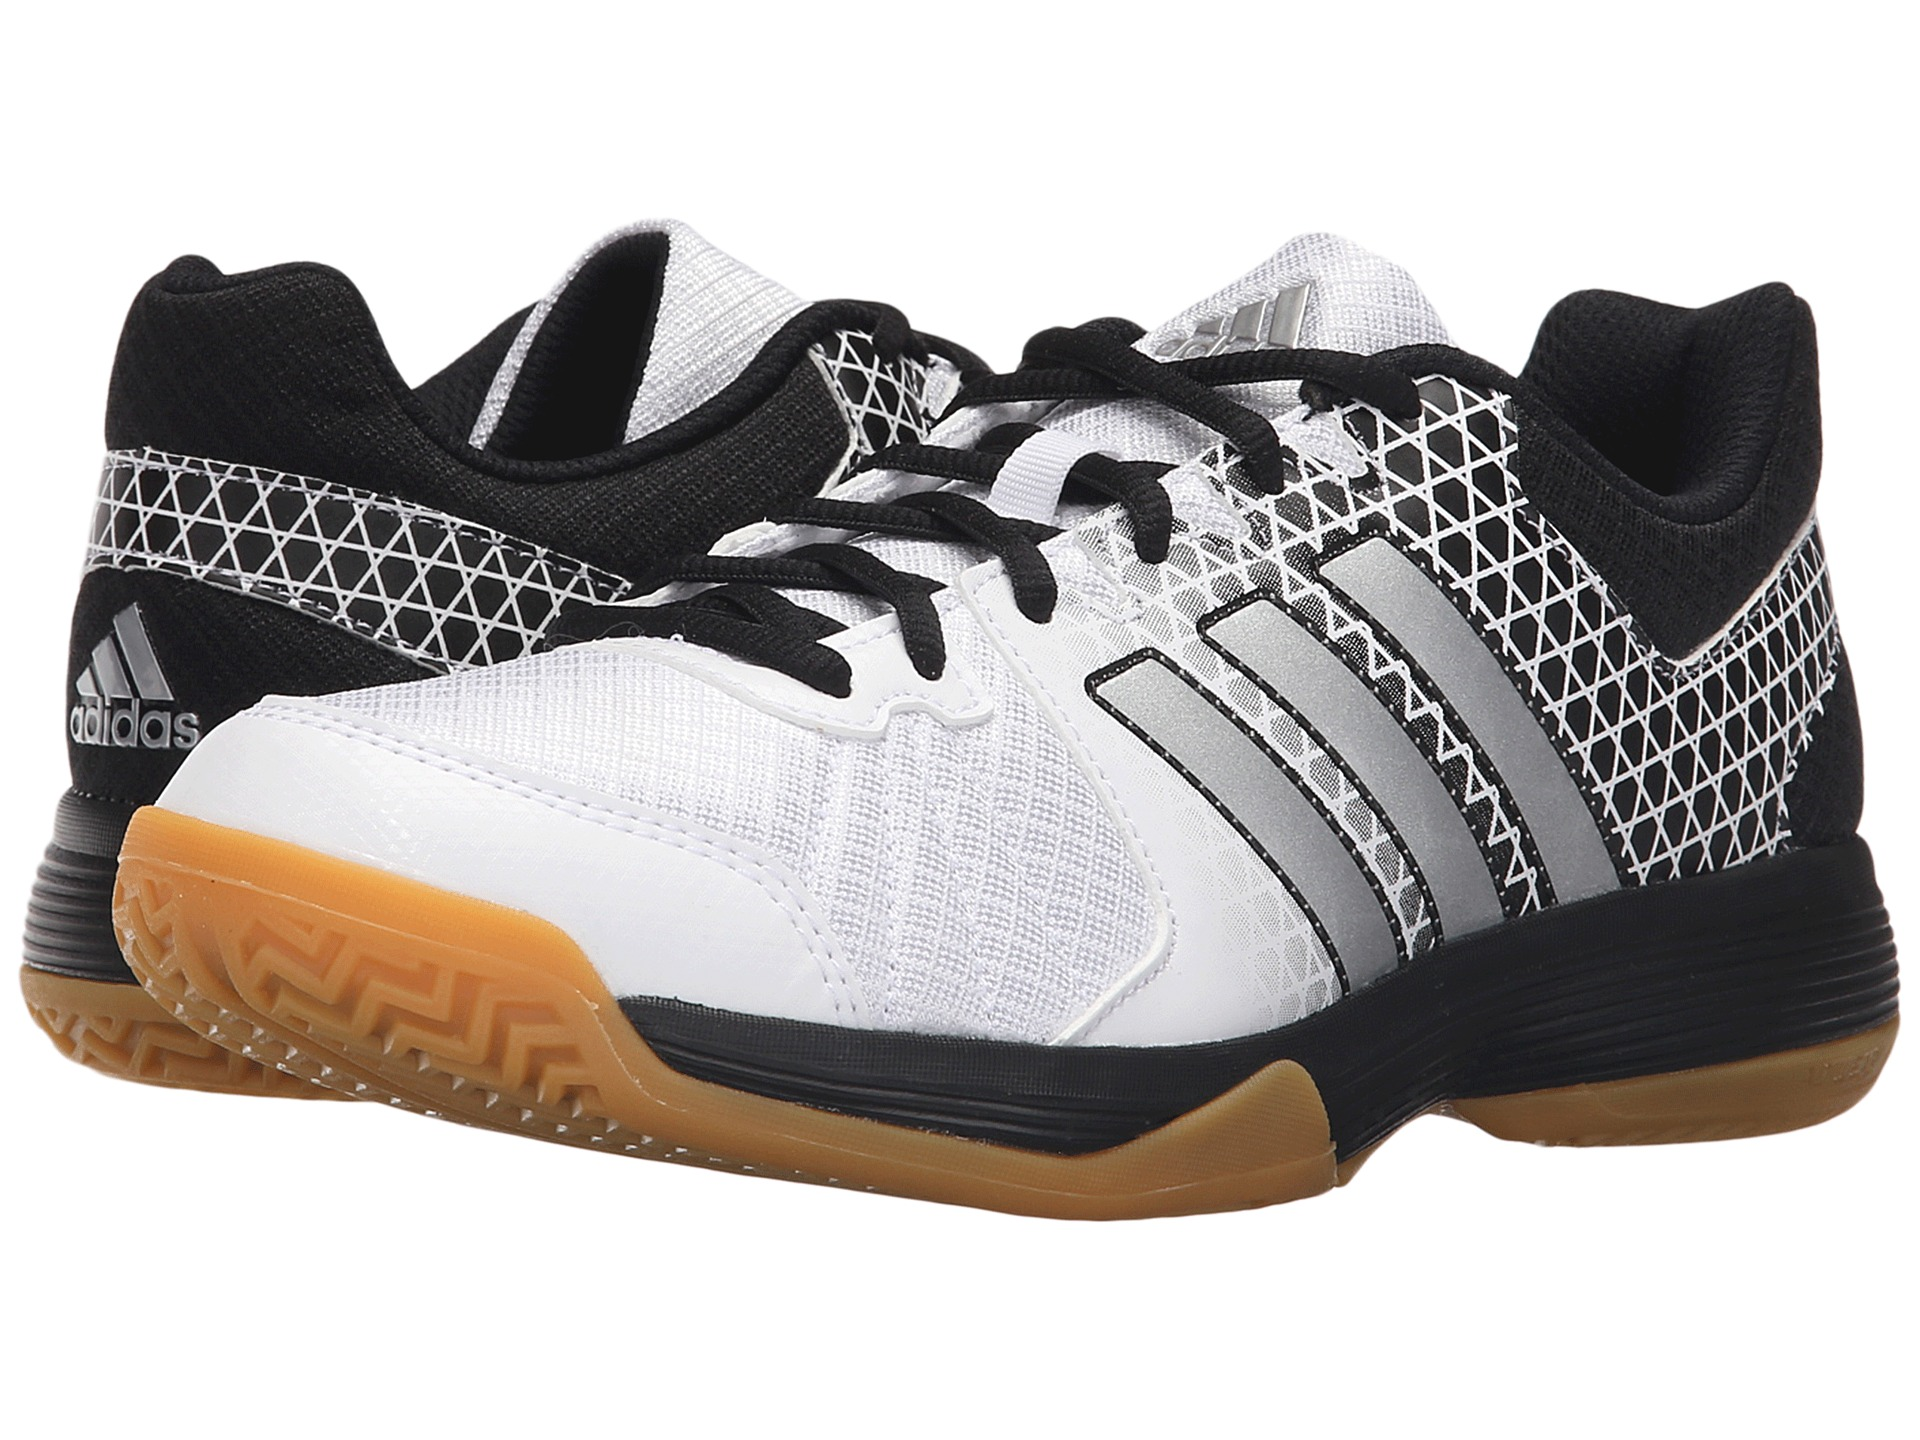 Adidas Performance Men's Ligra 4 Volleyball Shoe Review